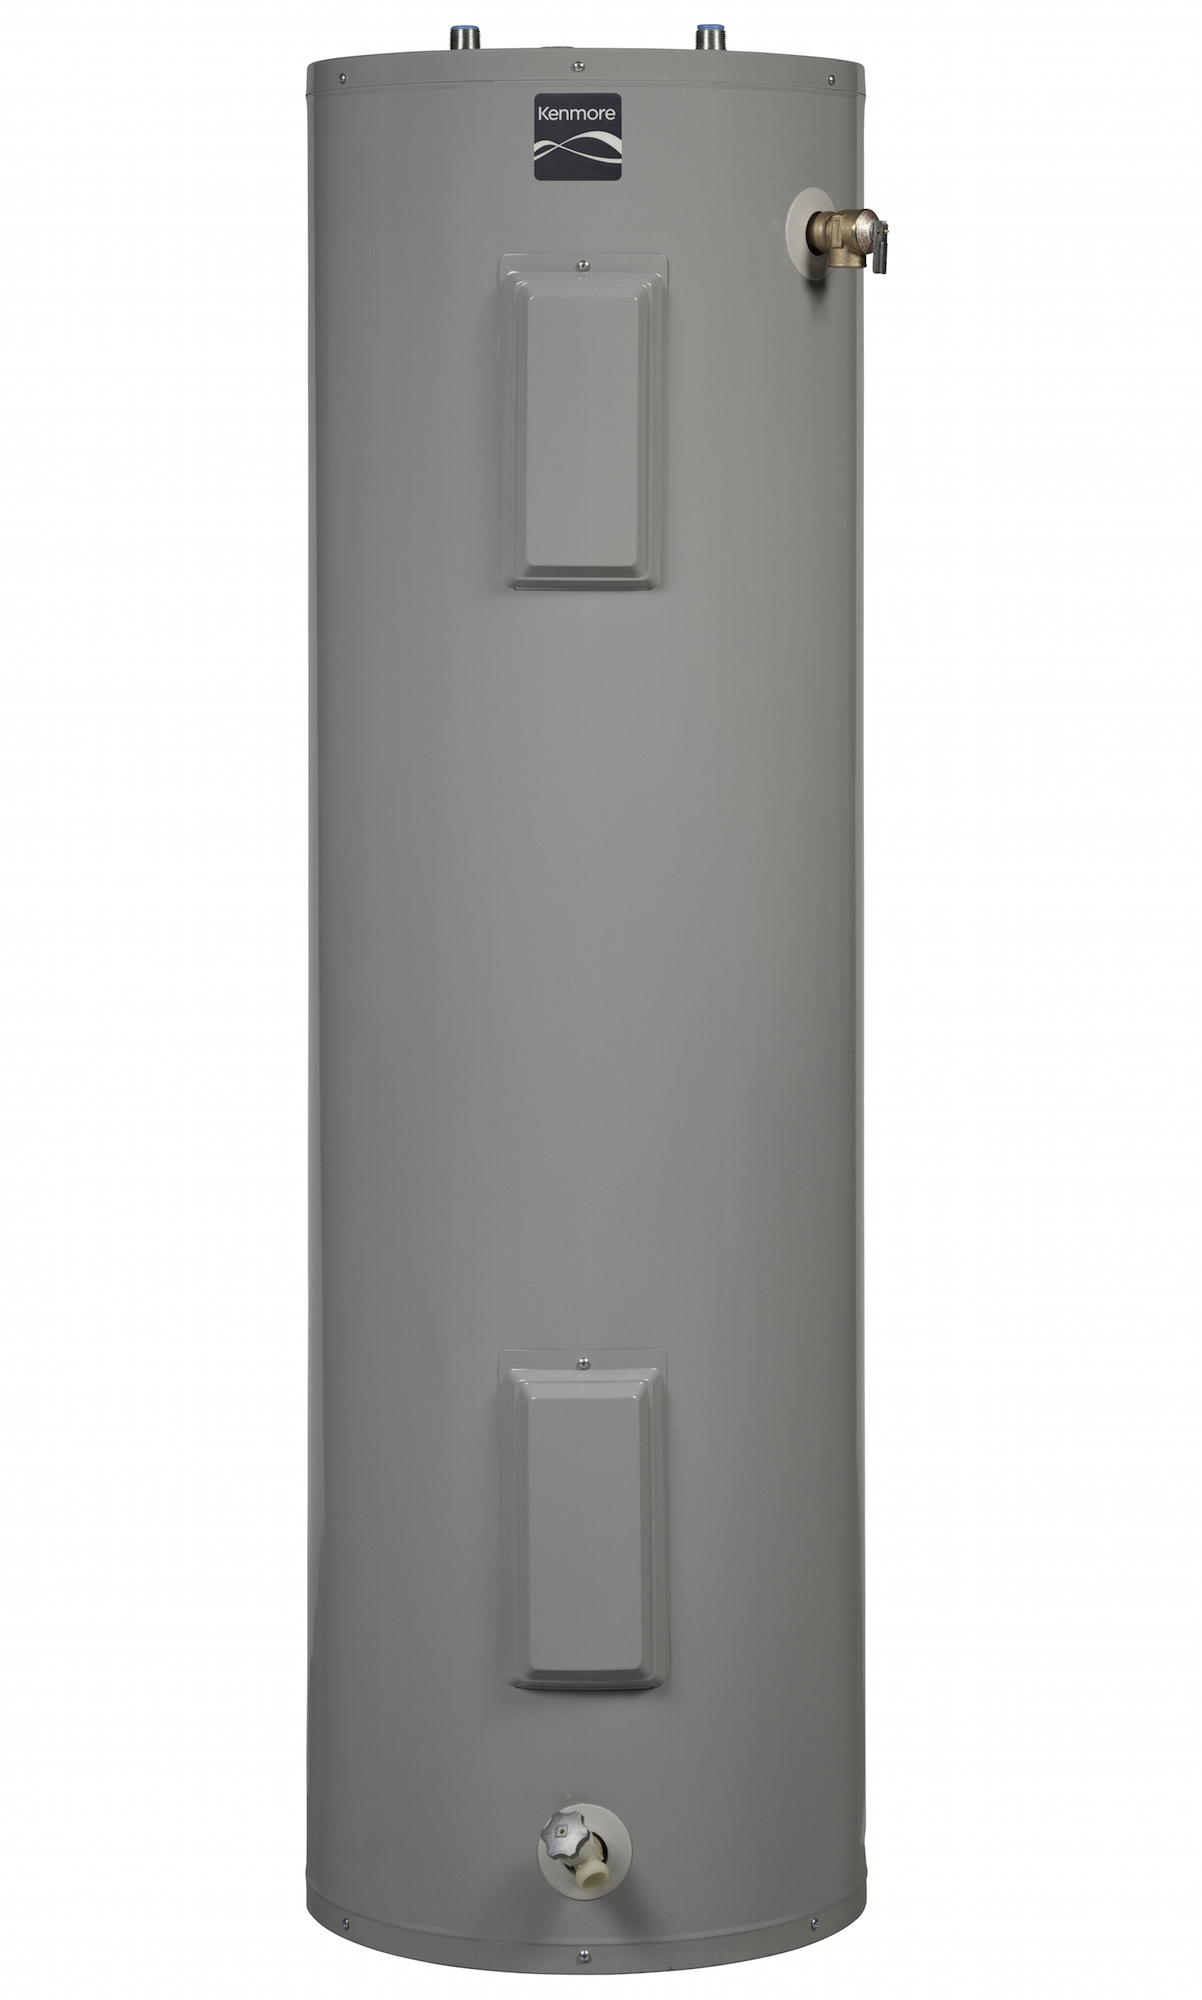 Kenmore 58650 50 gal. 6-Year Tall Electric Water Heater